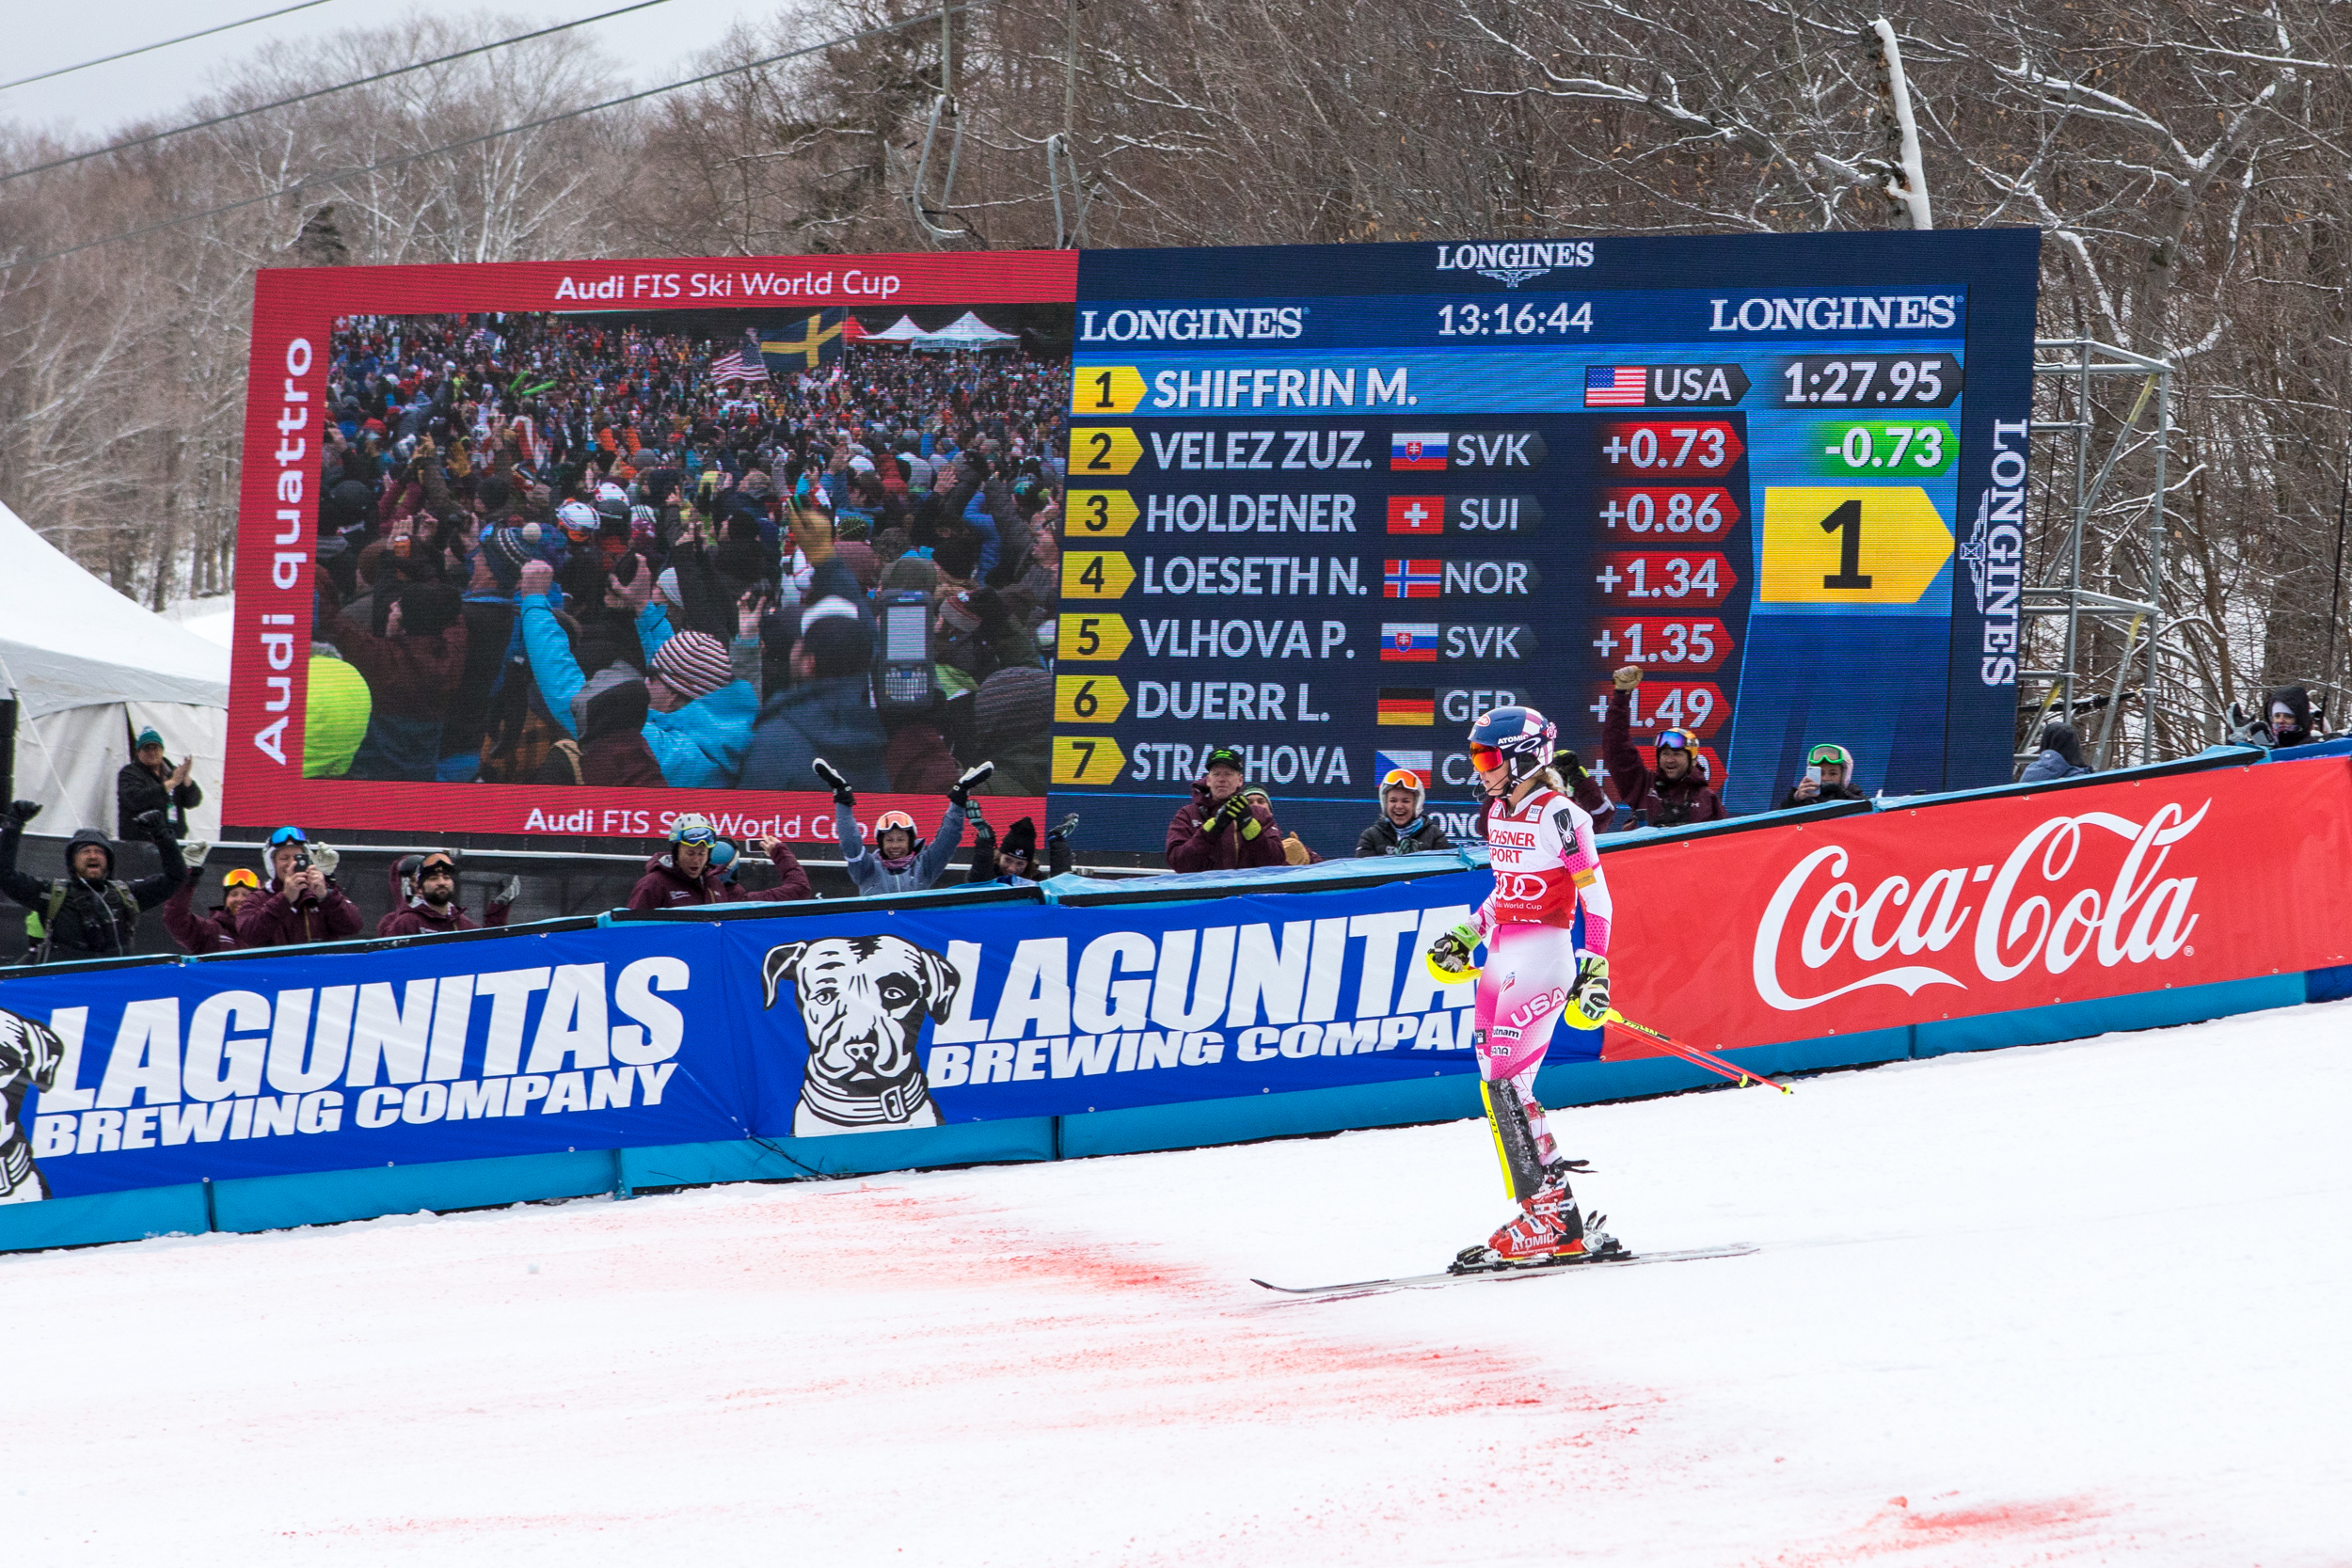 Killington-World-Cup-Mikaela-Shiffrin-GS-Finish.jpg